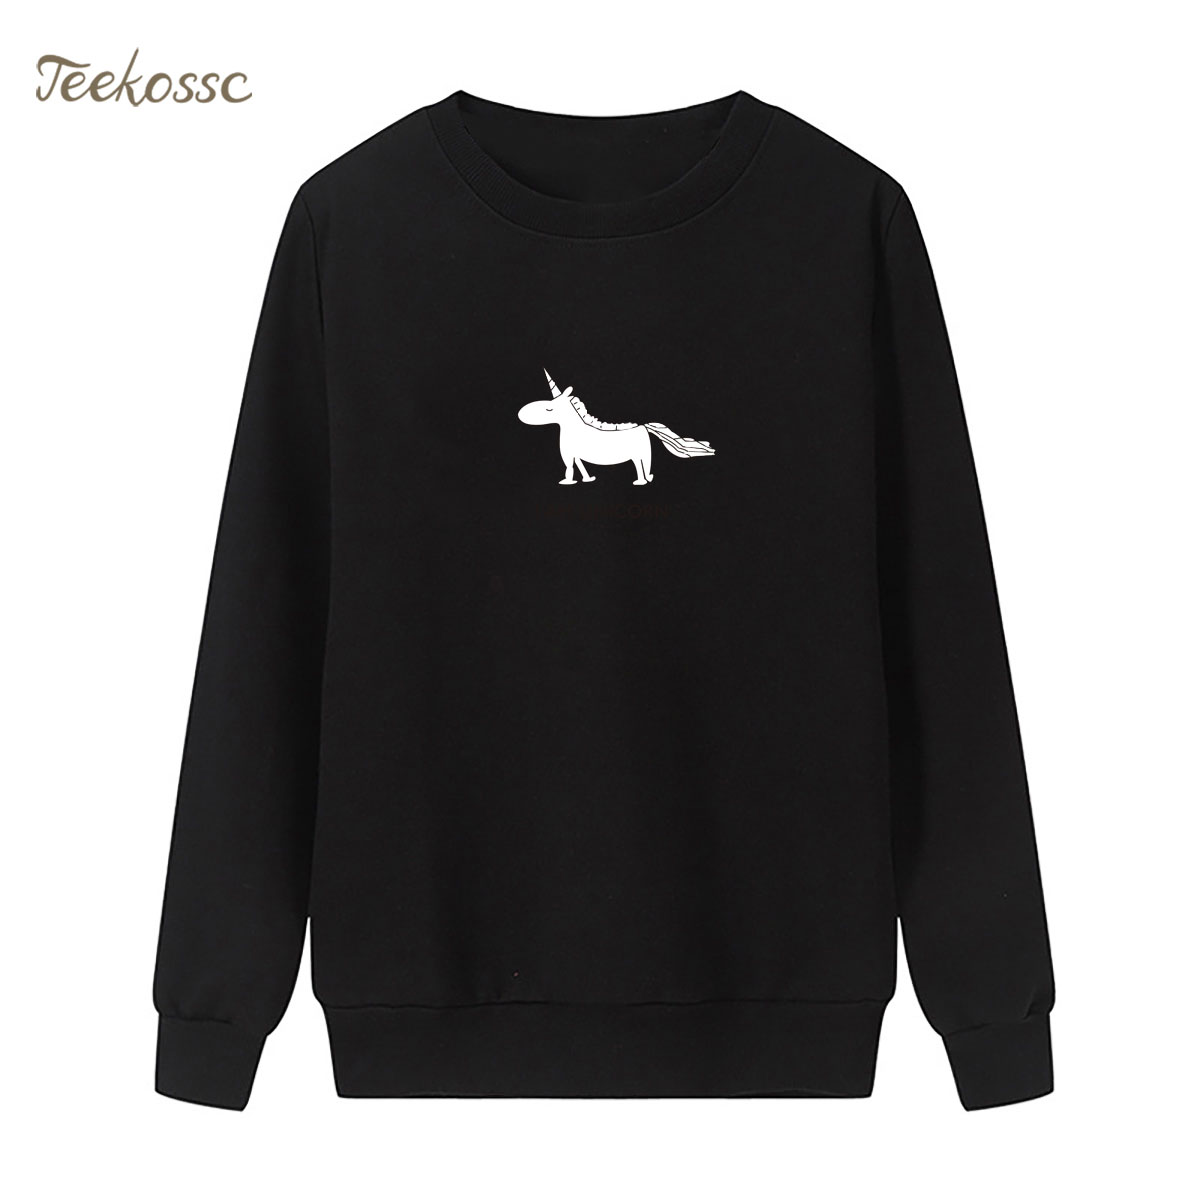 Little White Horse Sweatshirt Print Hoodie 2018 Winter Autumn Women Lasdies Pullover Loose Fleece Streetwear Cute Brand Clothing